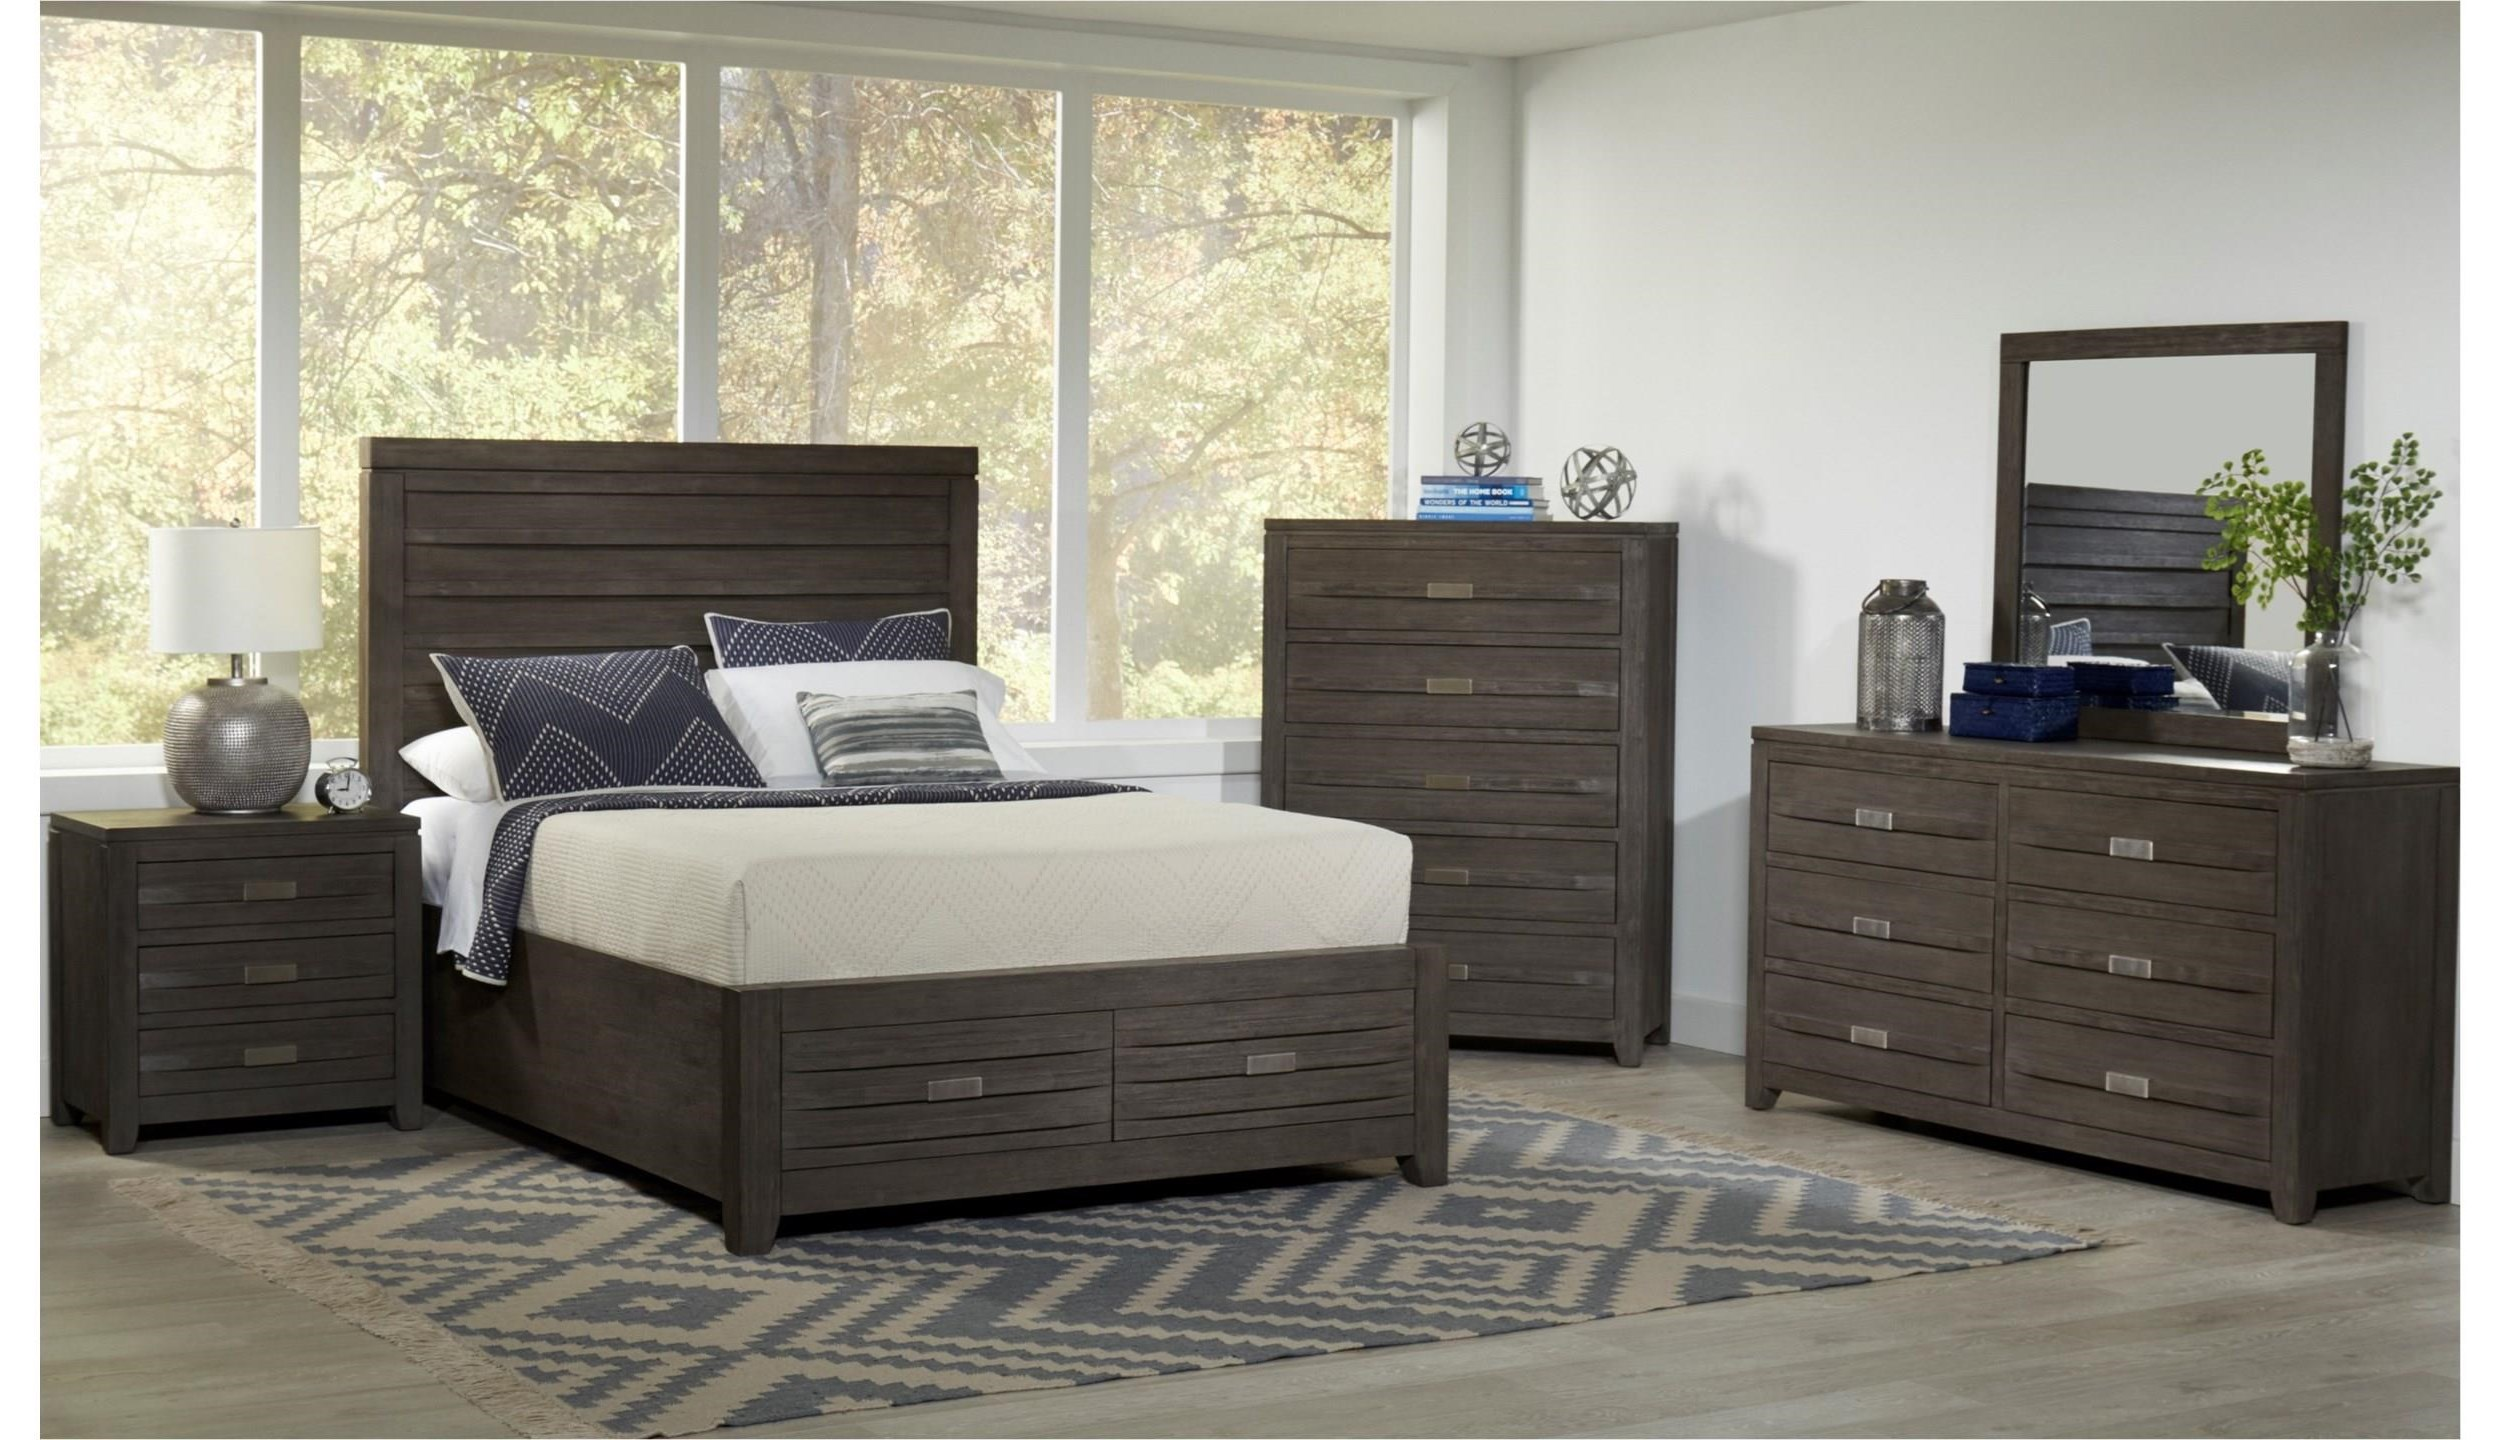 Altamonte  Queen Bedroom Group by Jofran at Value City Furniture